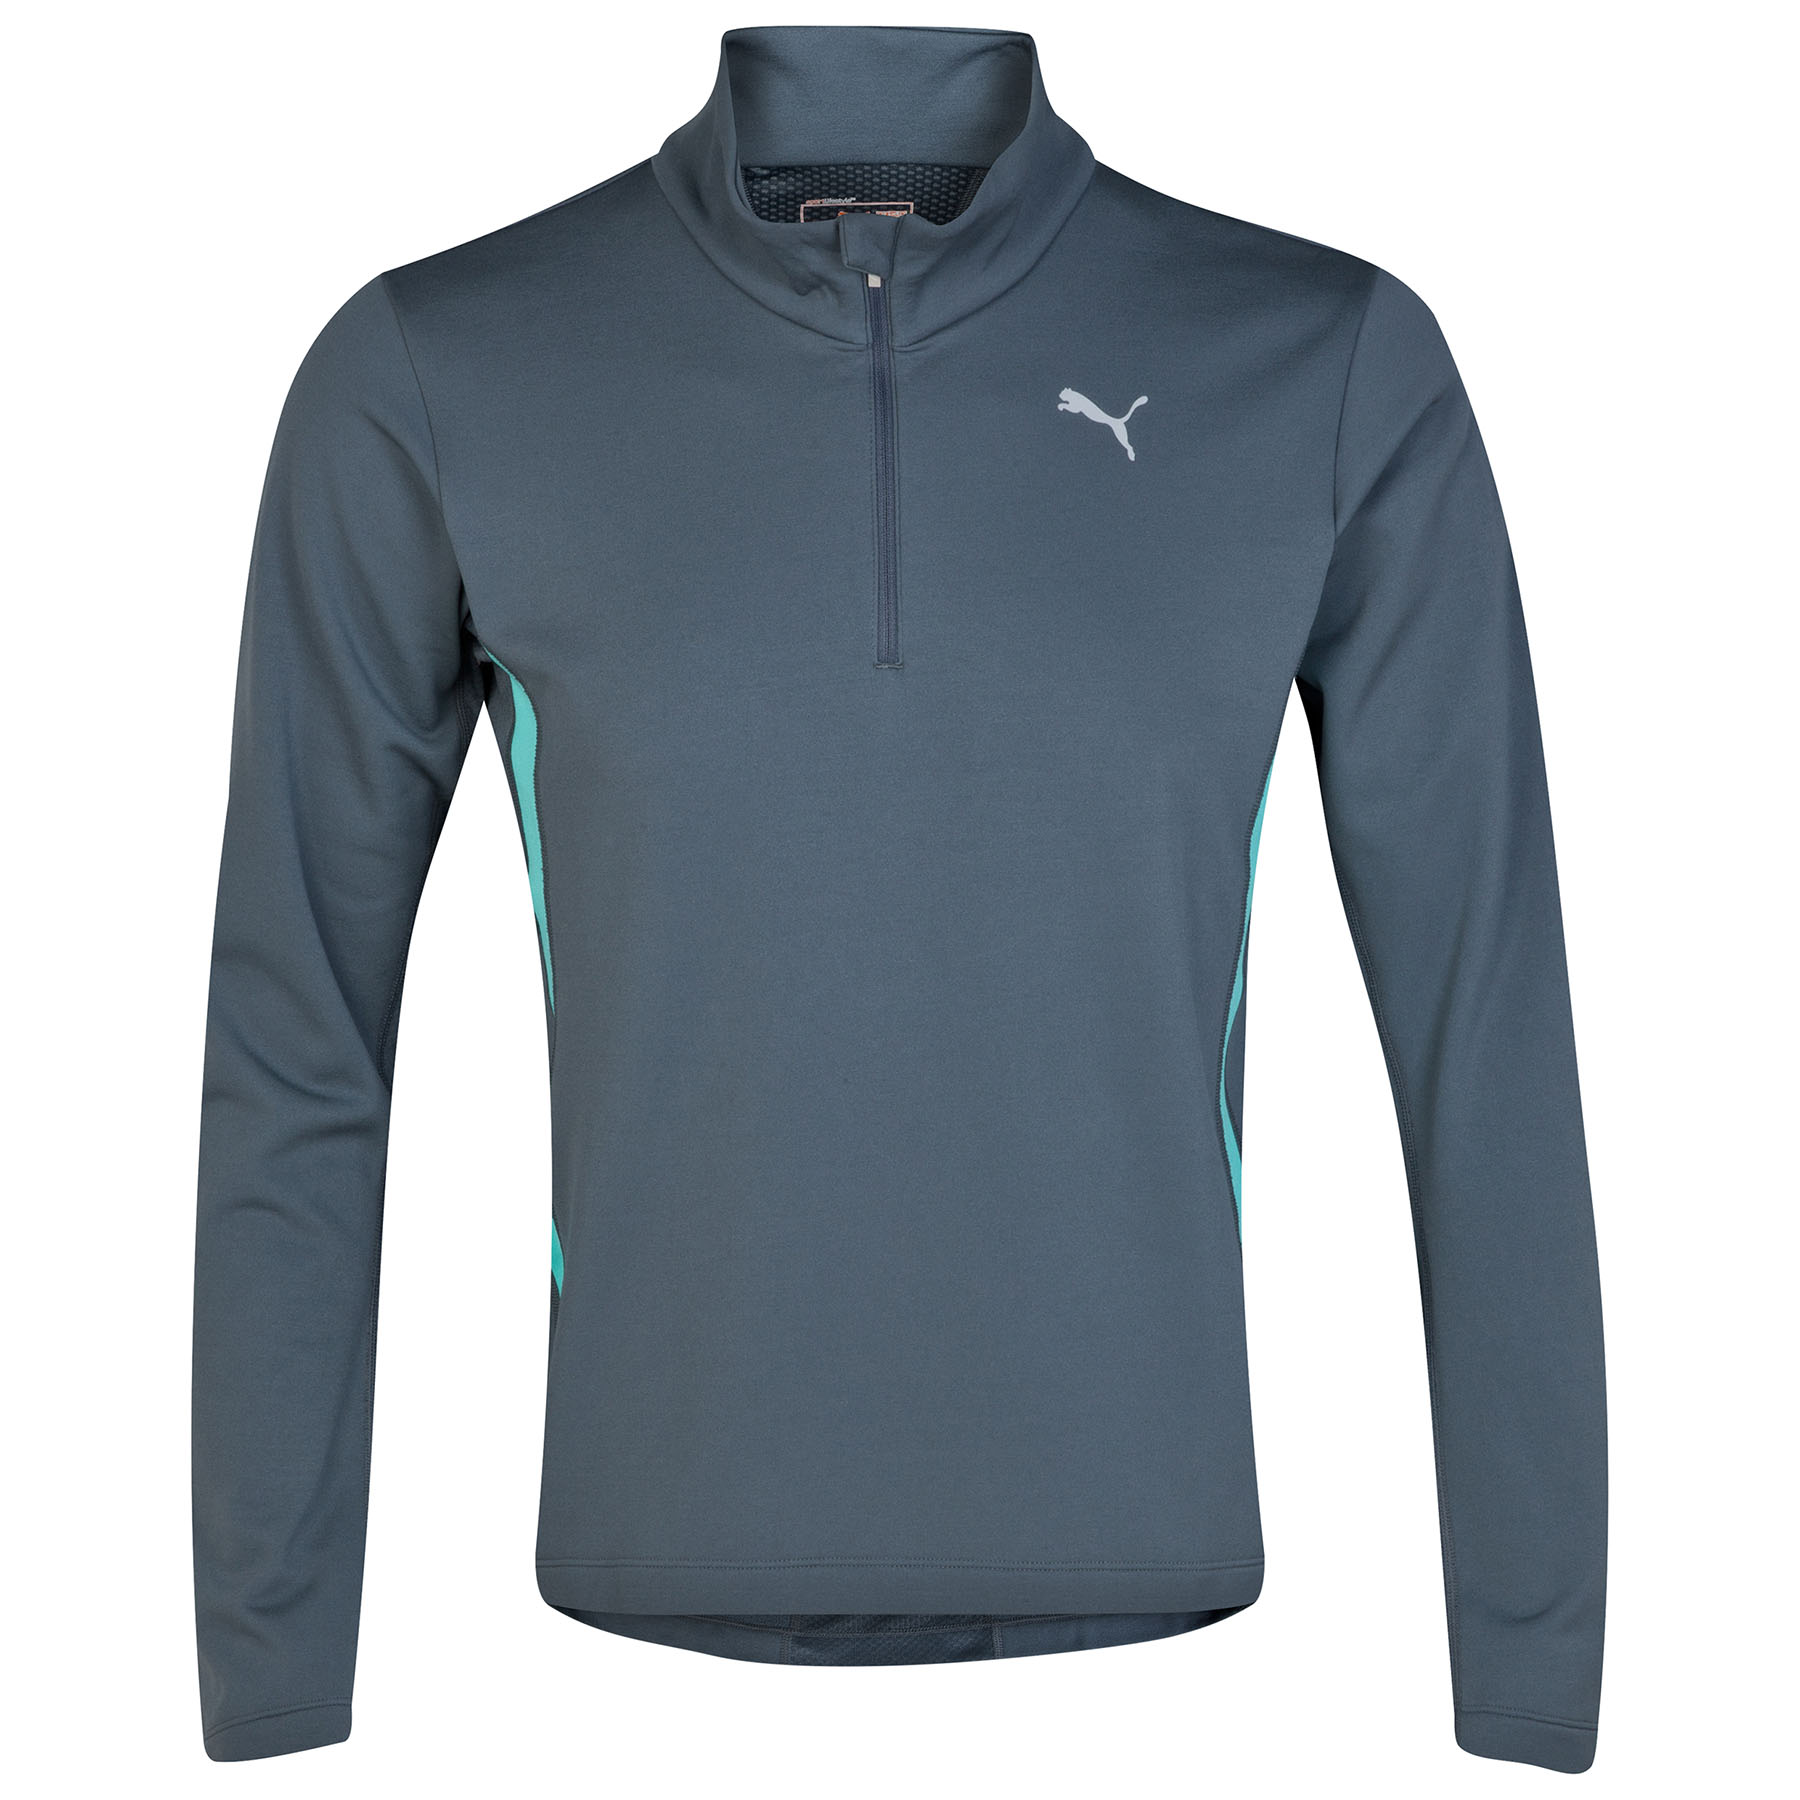 Puma Half Zipped T-Shirt - Long Sleeve